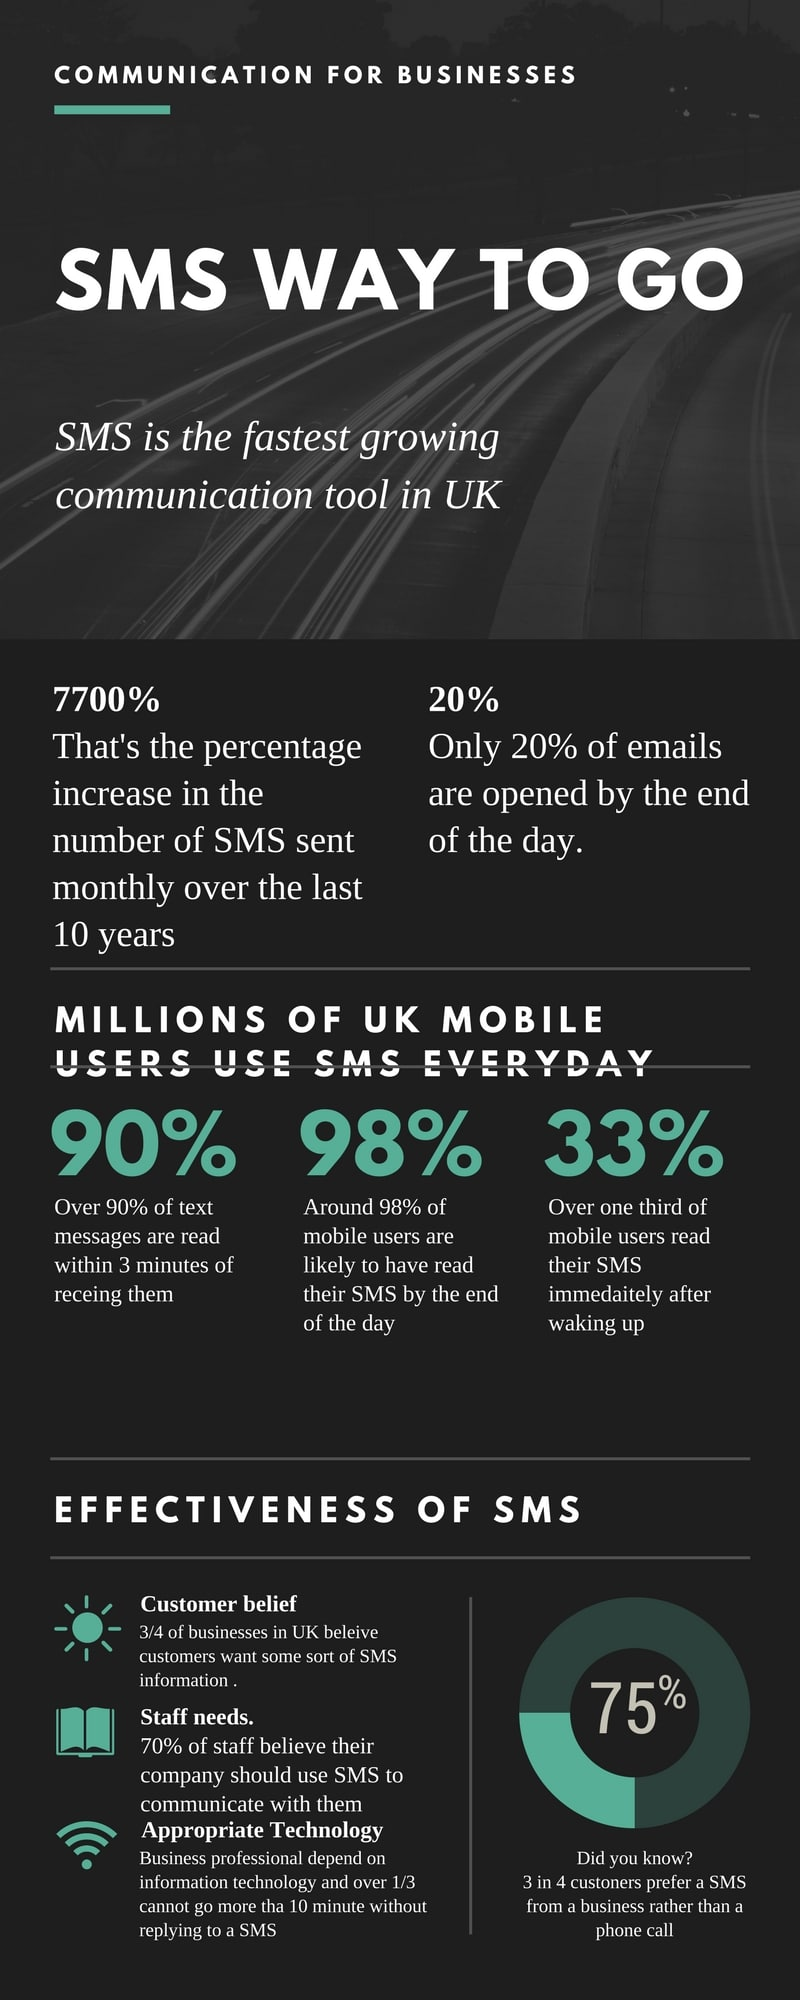 SMS IS THE FASTEST GROWING COMMUNICATION TOOL